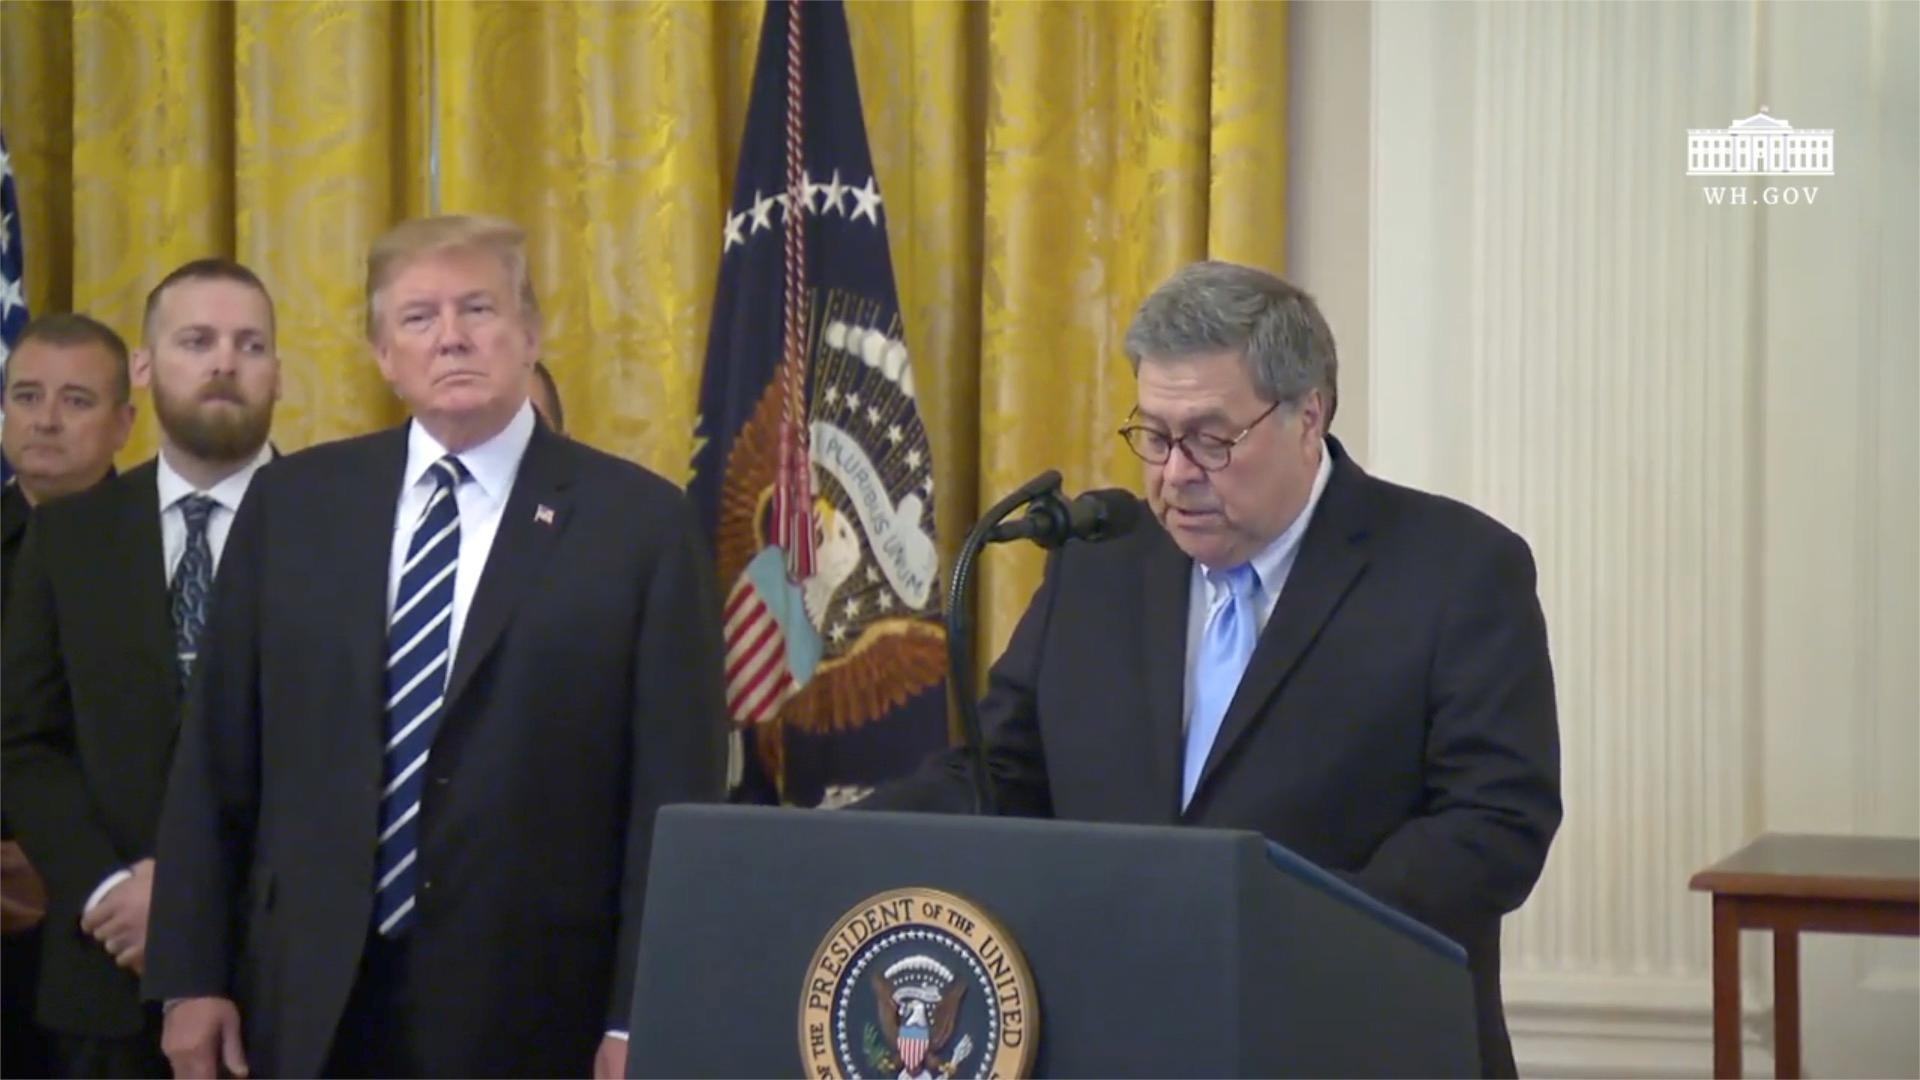 Trump Gives William Barr Wide Declassification Authority In 'Spying' Probe